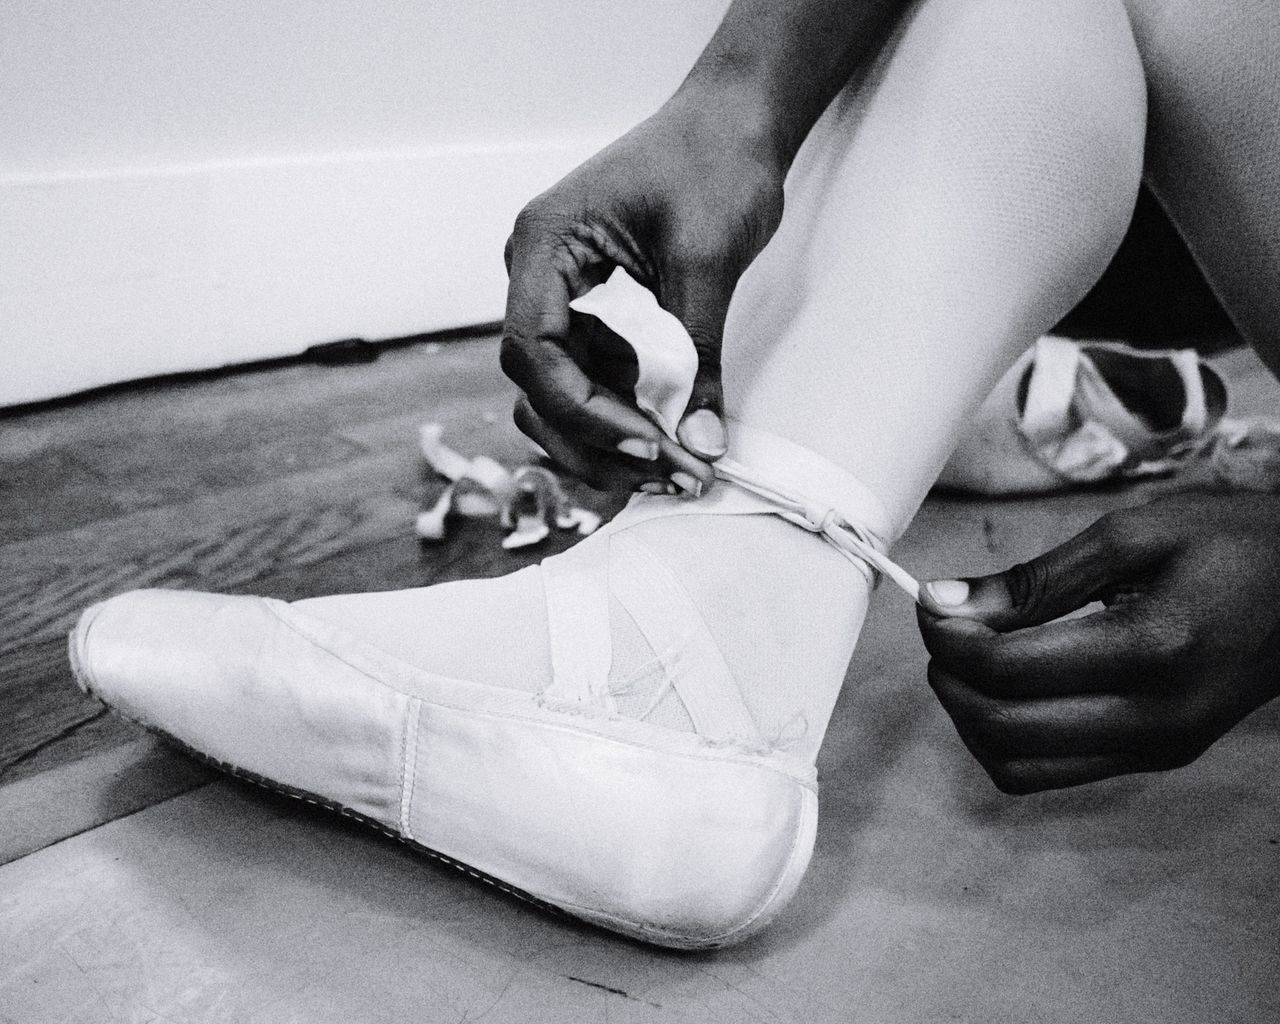 Pointe Prep Indoors  Close-up Real People Women One Person Adults Only Only Women One Woman Only Human Hand Adult People Young Adult Day Mister Brown Photography Ballet Shoes Ballerina PointeShoes  Ballet Dancer